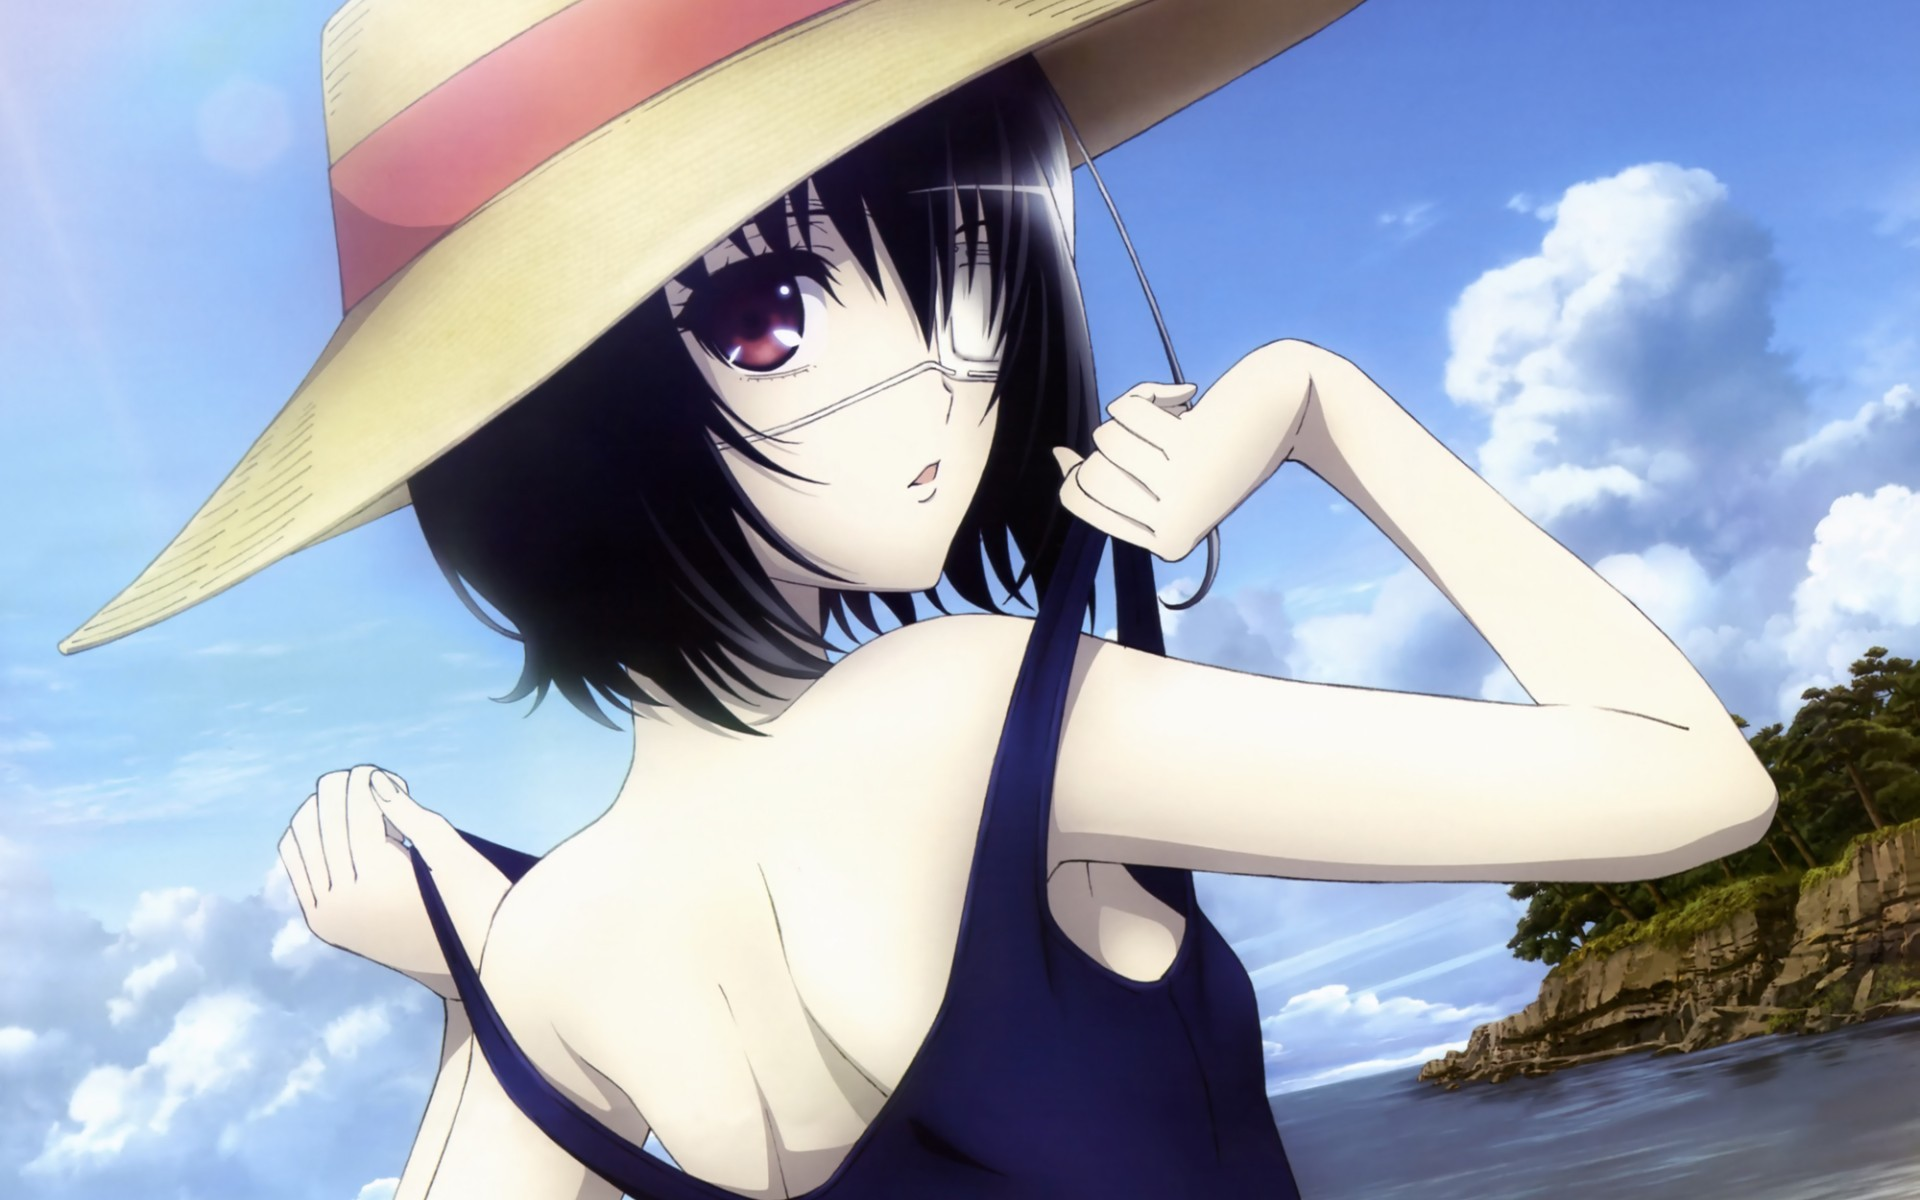 Anime 1920x1200 Another Misaki Mei anime swimwear school swimsuits anime girls hat